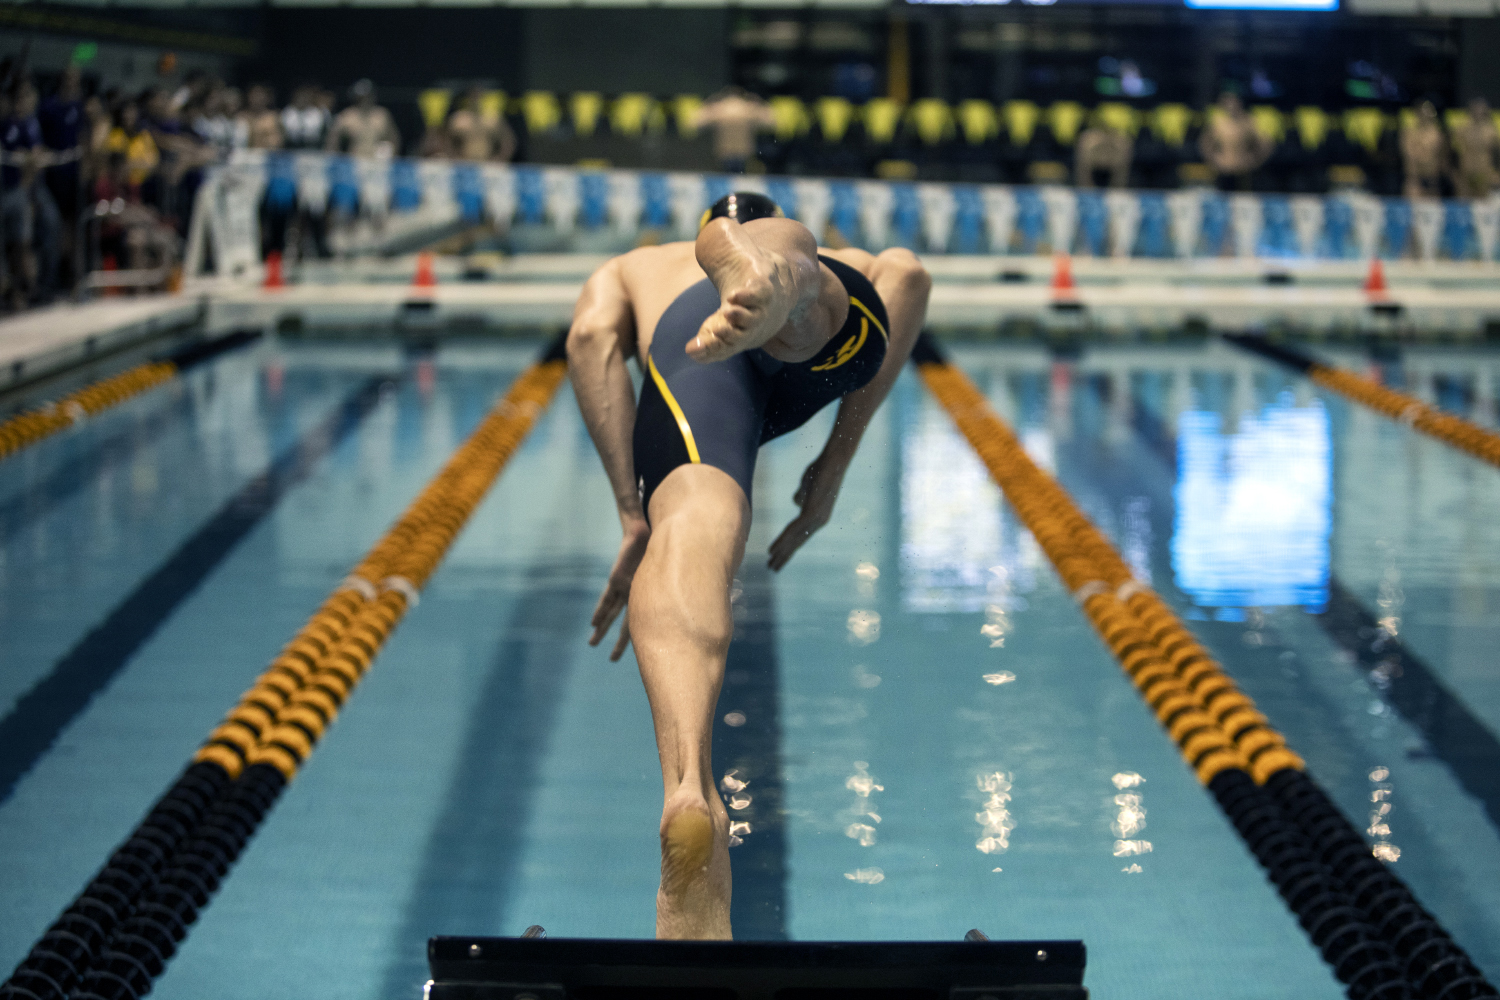 University+of+Iowa%27s+Jack+Smith+starts+of+the+blocks+for+the+100+meter+freestyle+during++finals+of+the+Big+10+Swimming+Championships+on+Saturday%2C+March+2%2C+2019.+